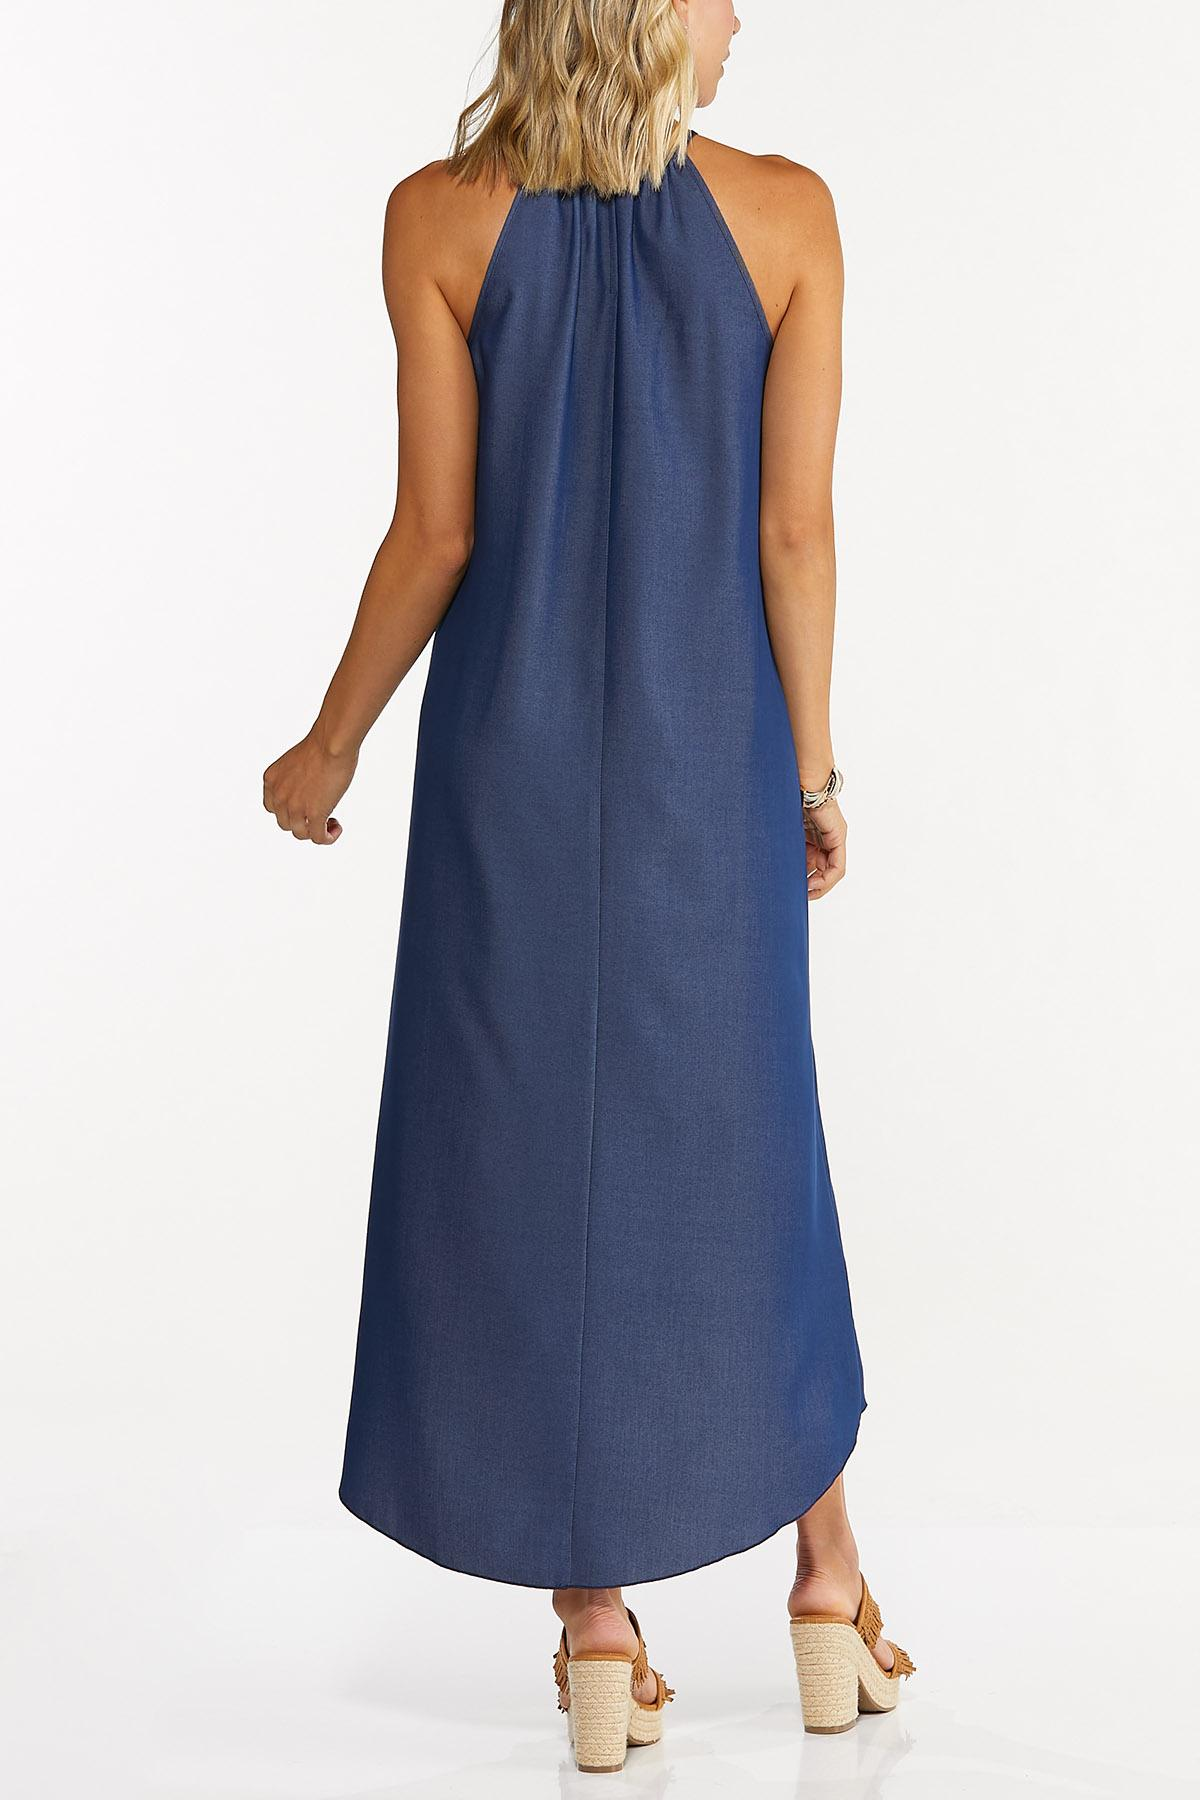 Embellished Chambray High-Low Dress (Item #44707762)